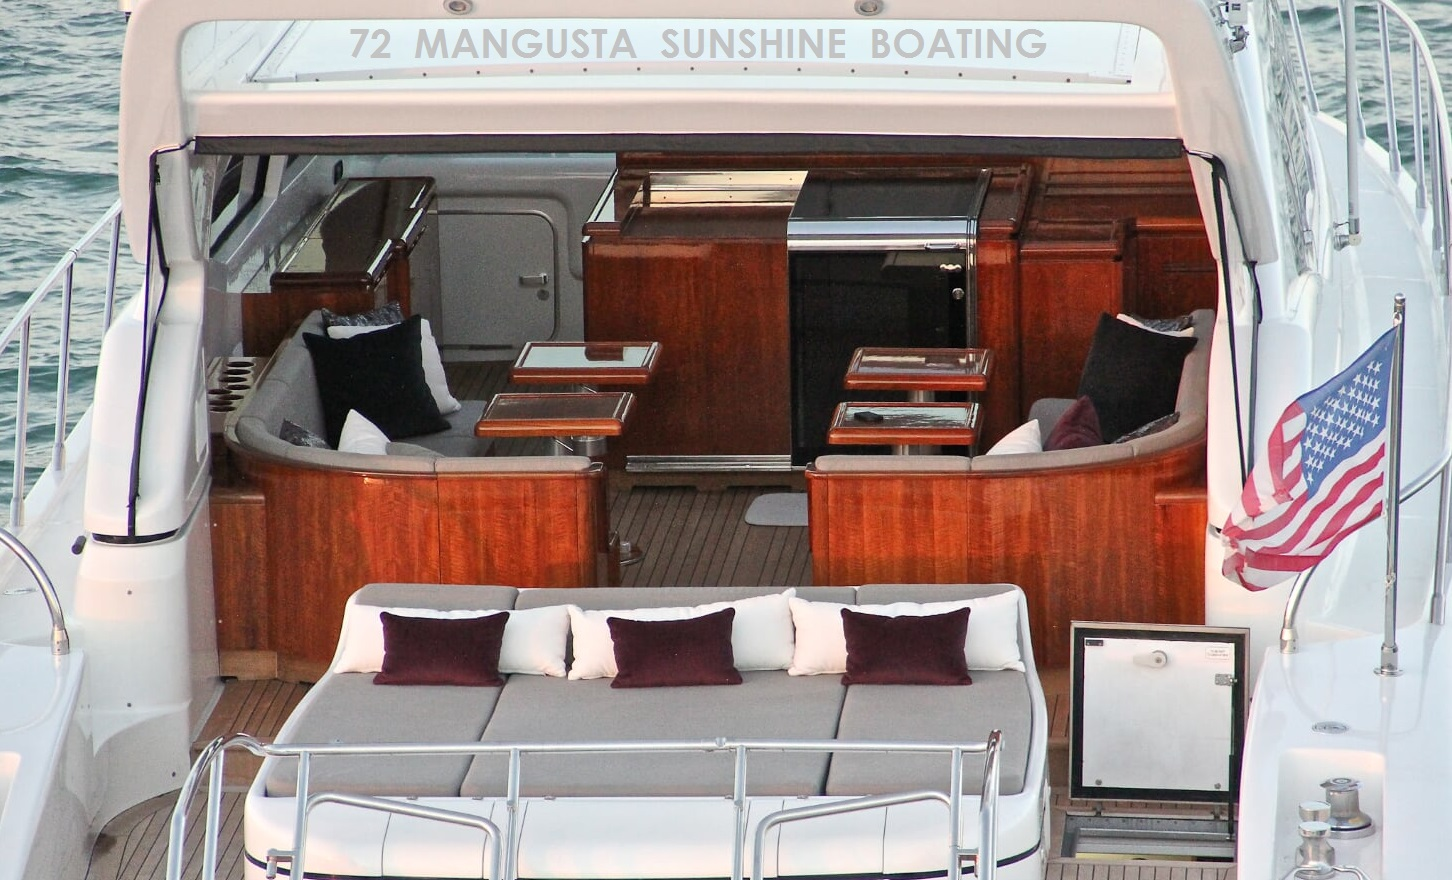 sunshine-boating-manusta-72-e